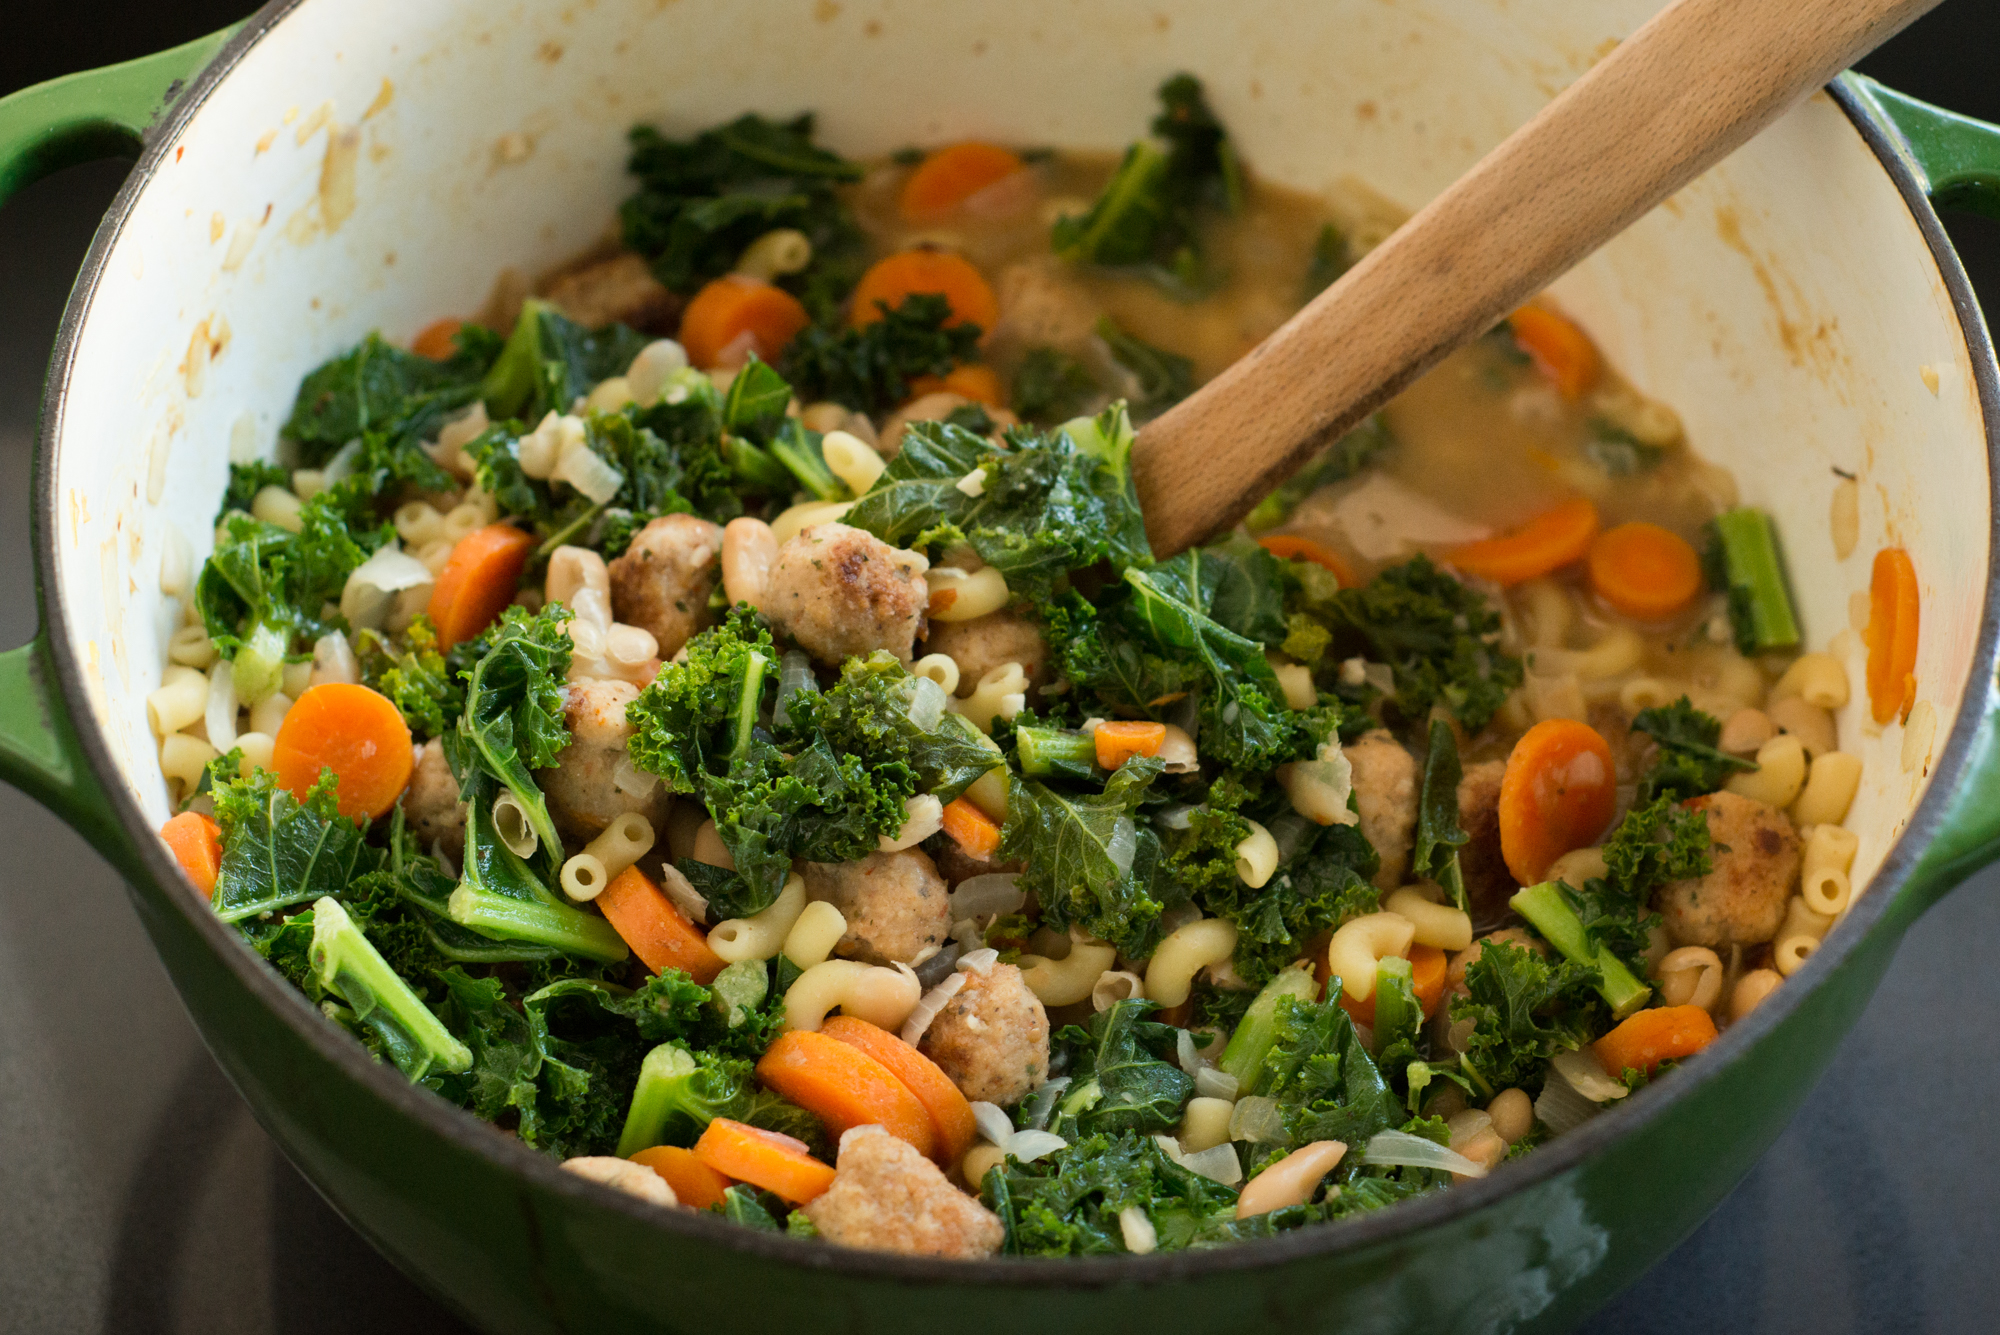 Italian Wedding Soup | Garlic, My Soul